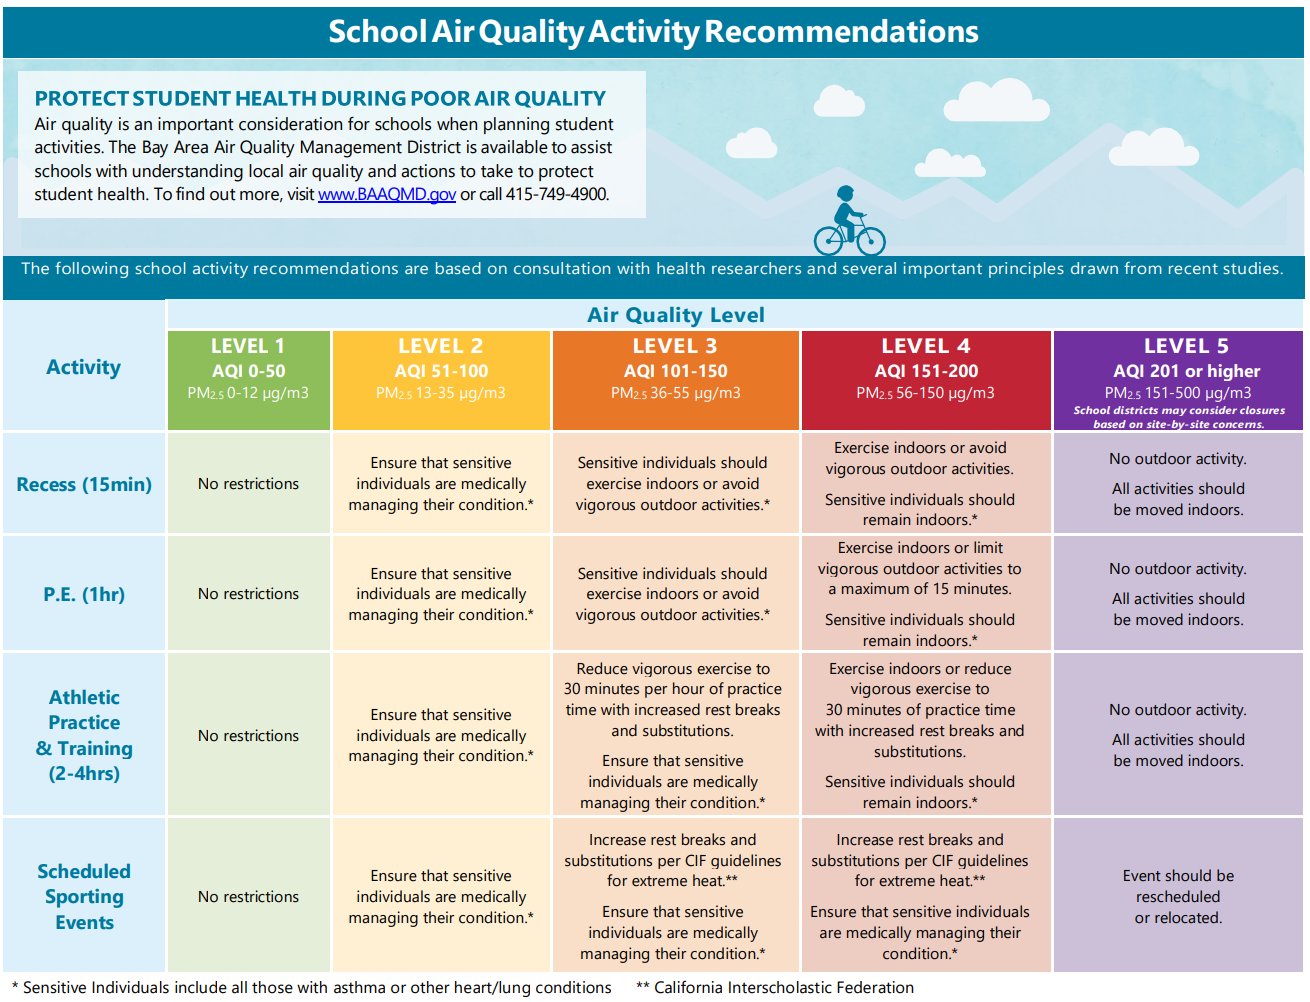 This is a chart that provides guidance for schools at different air quality indiex (AQI) levels. Just below this chart is a link to a readable PDF which contains the identical information.